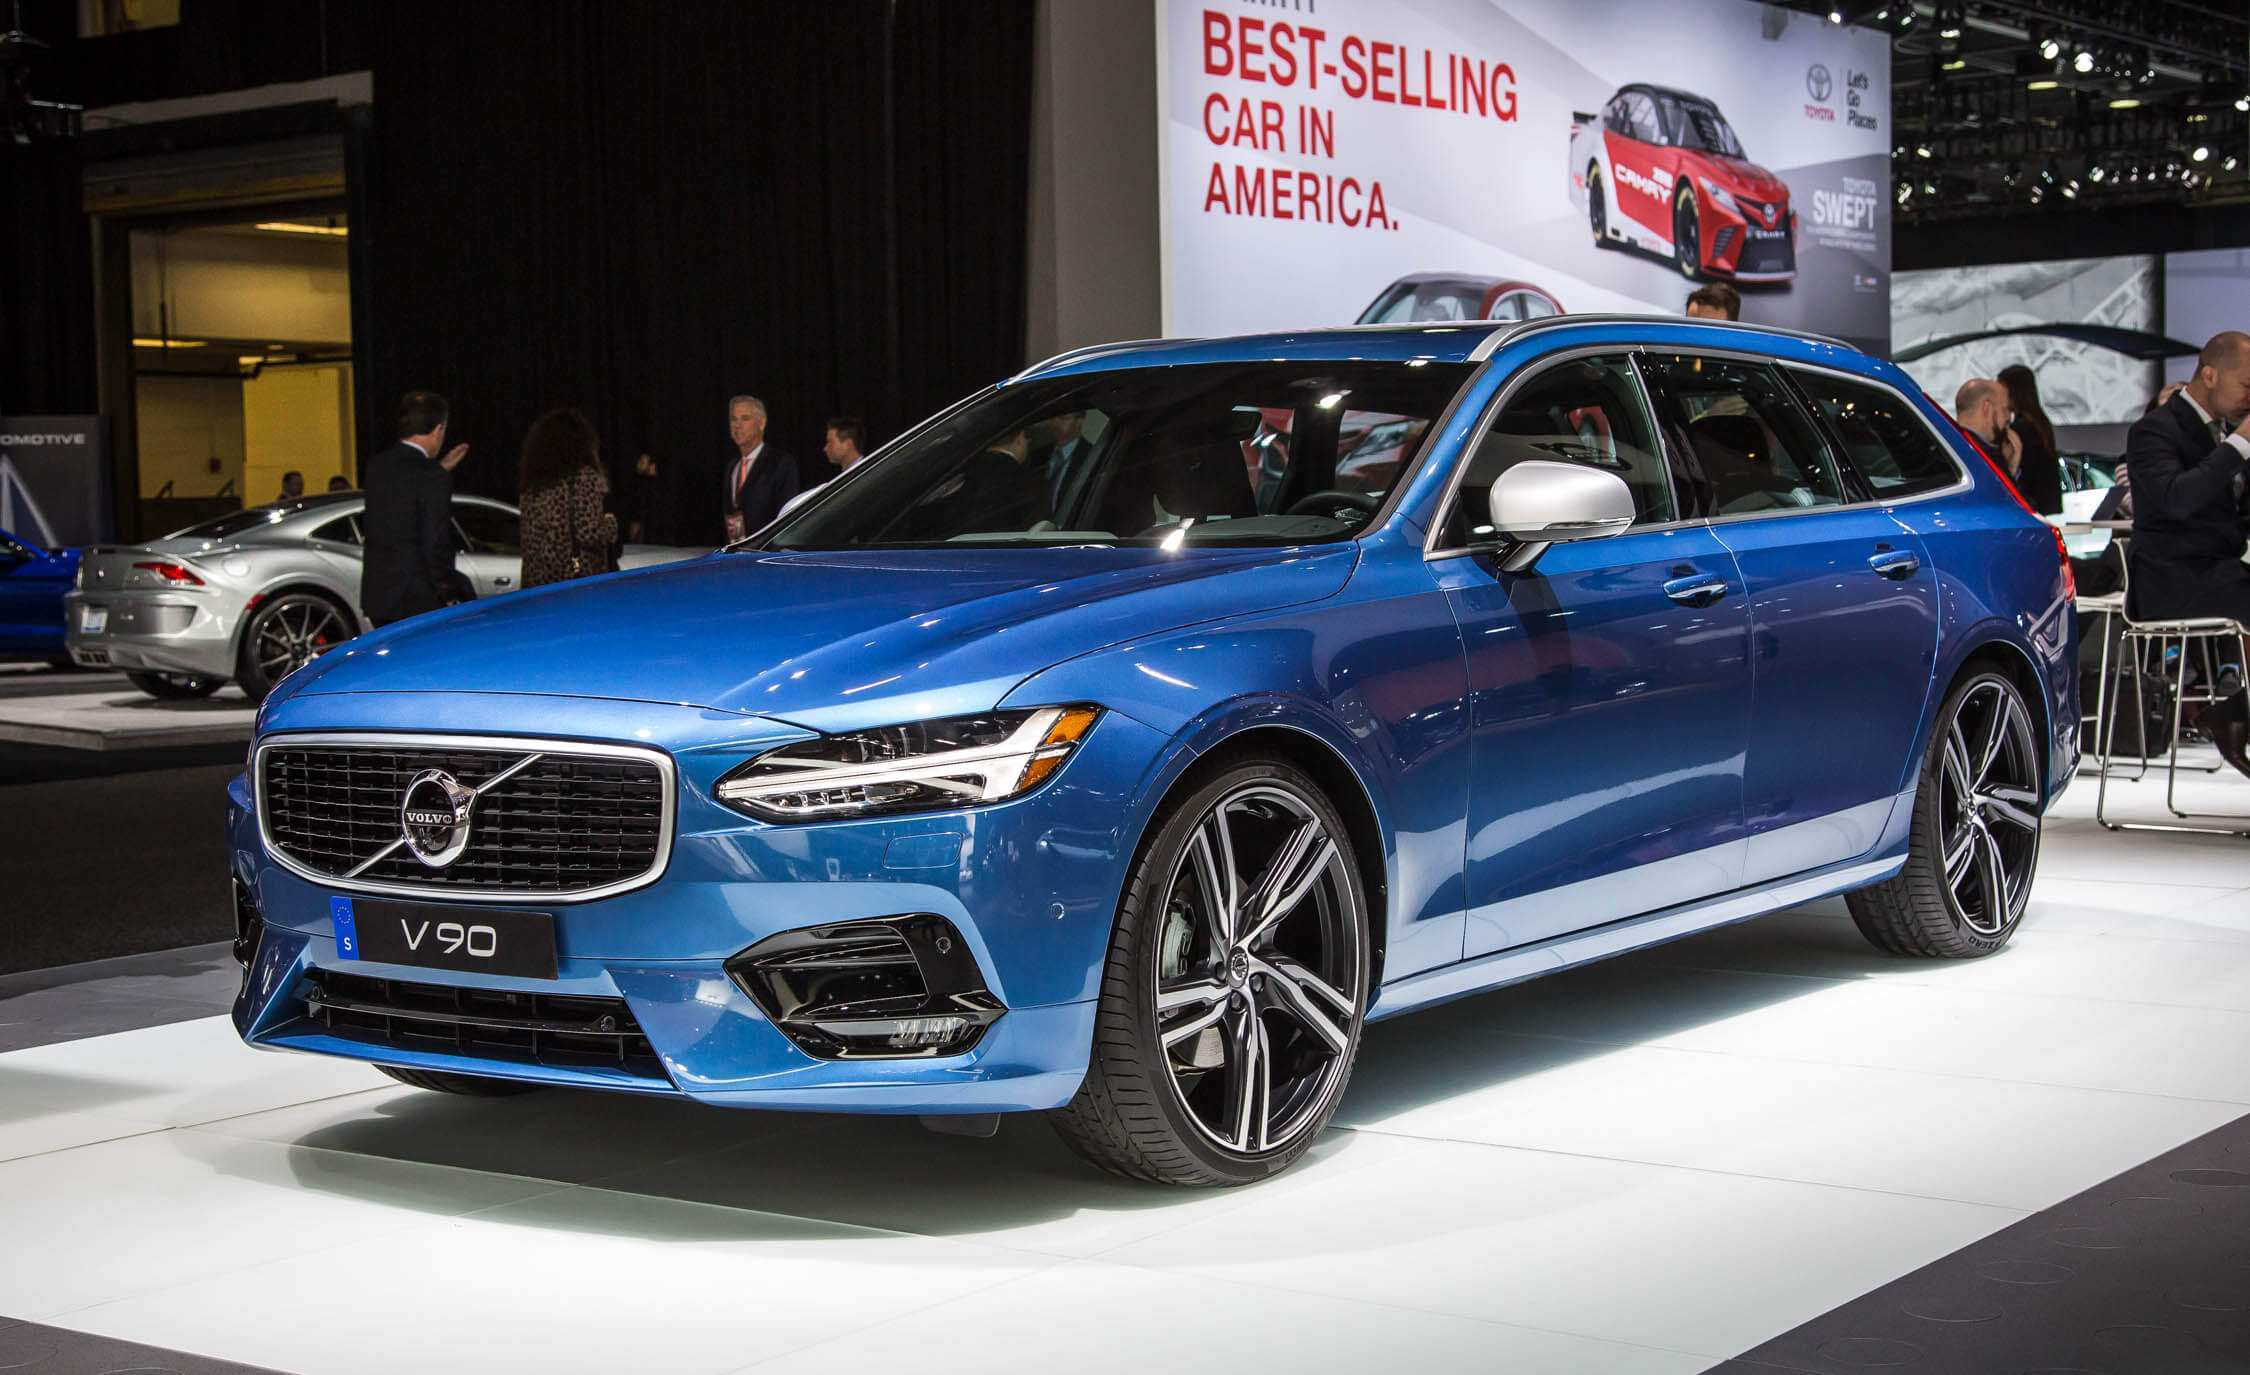 28 Best Review 2020 Volvo V70 2018 Redesign and Concept by 2020 Volvo V70 2018